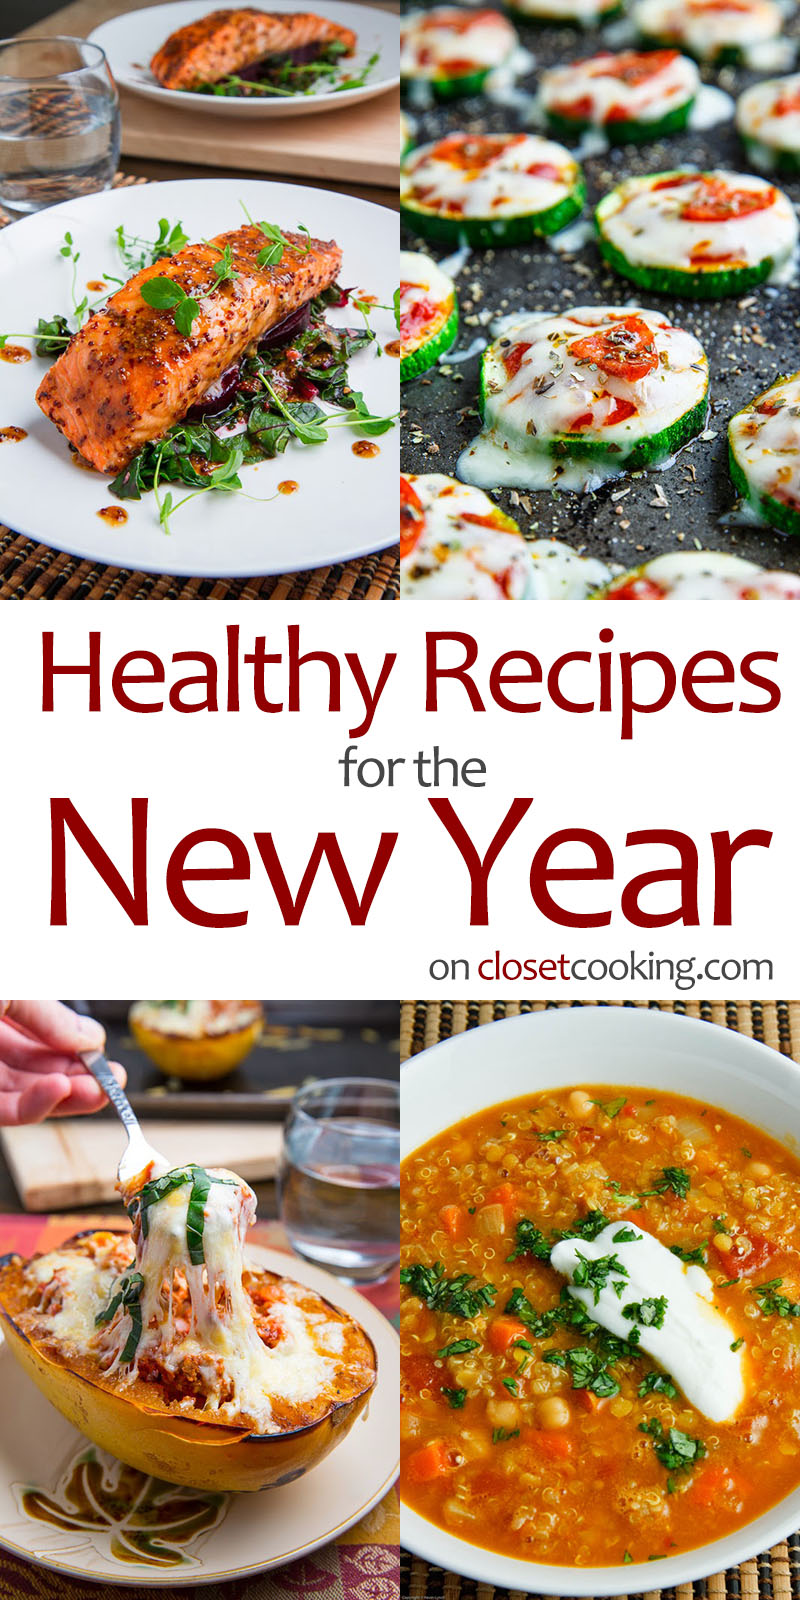 Healthy Recipes to Start the New Year